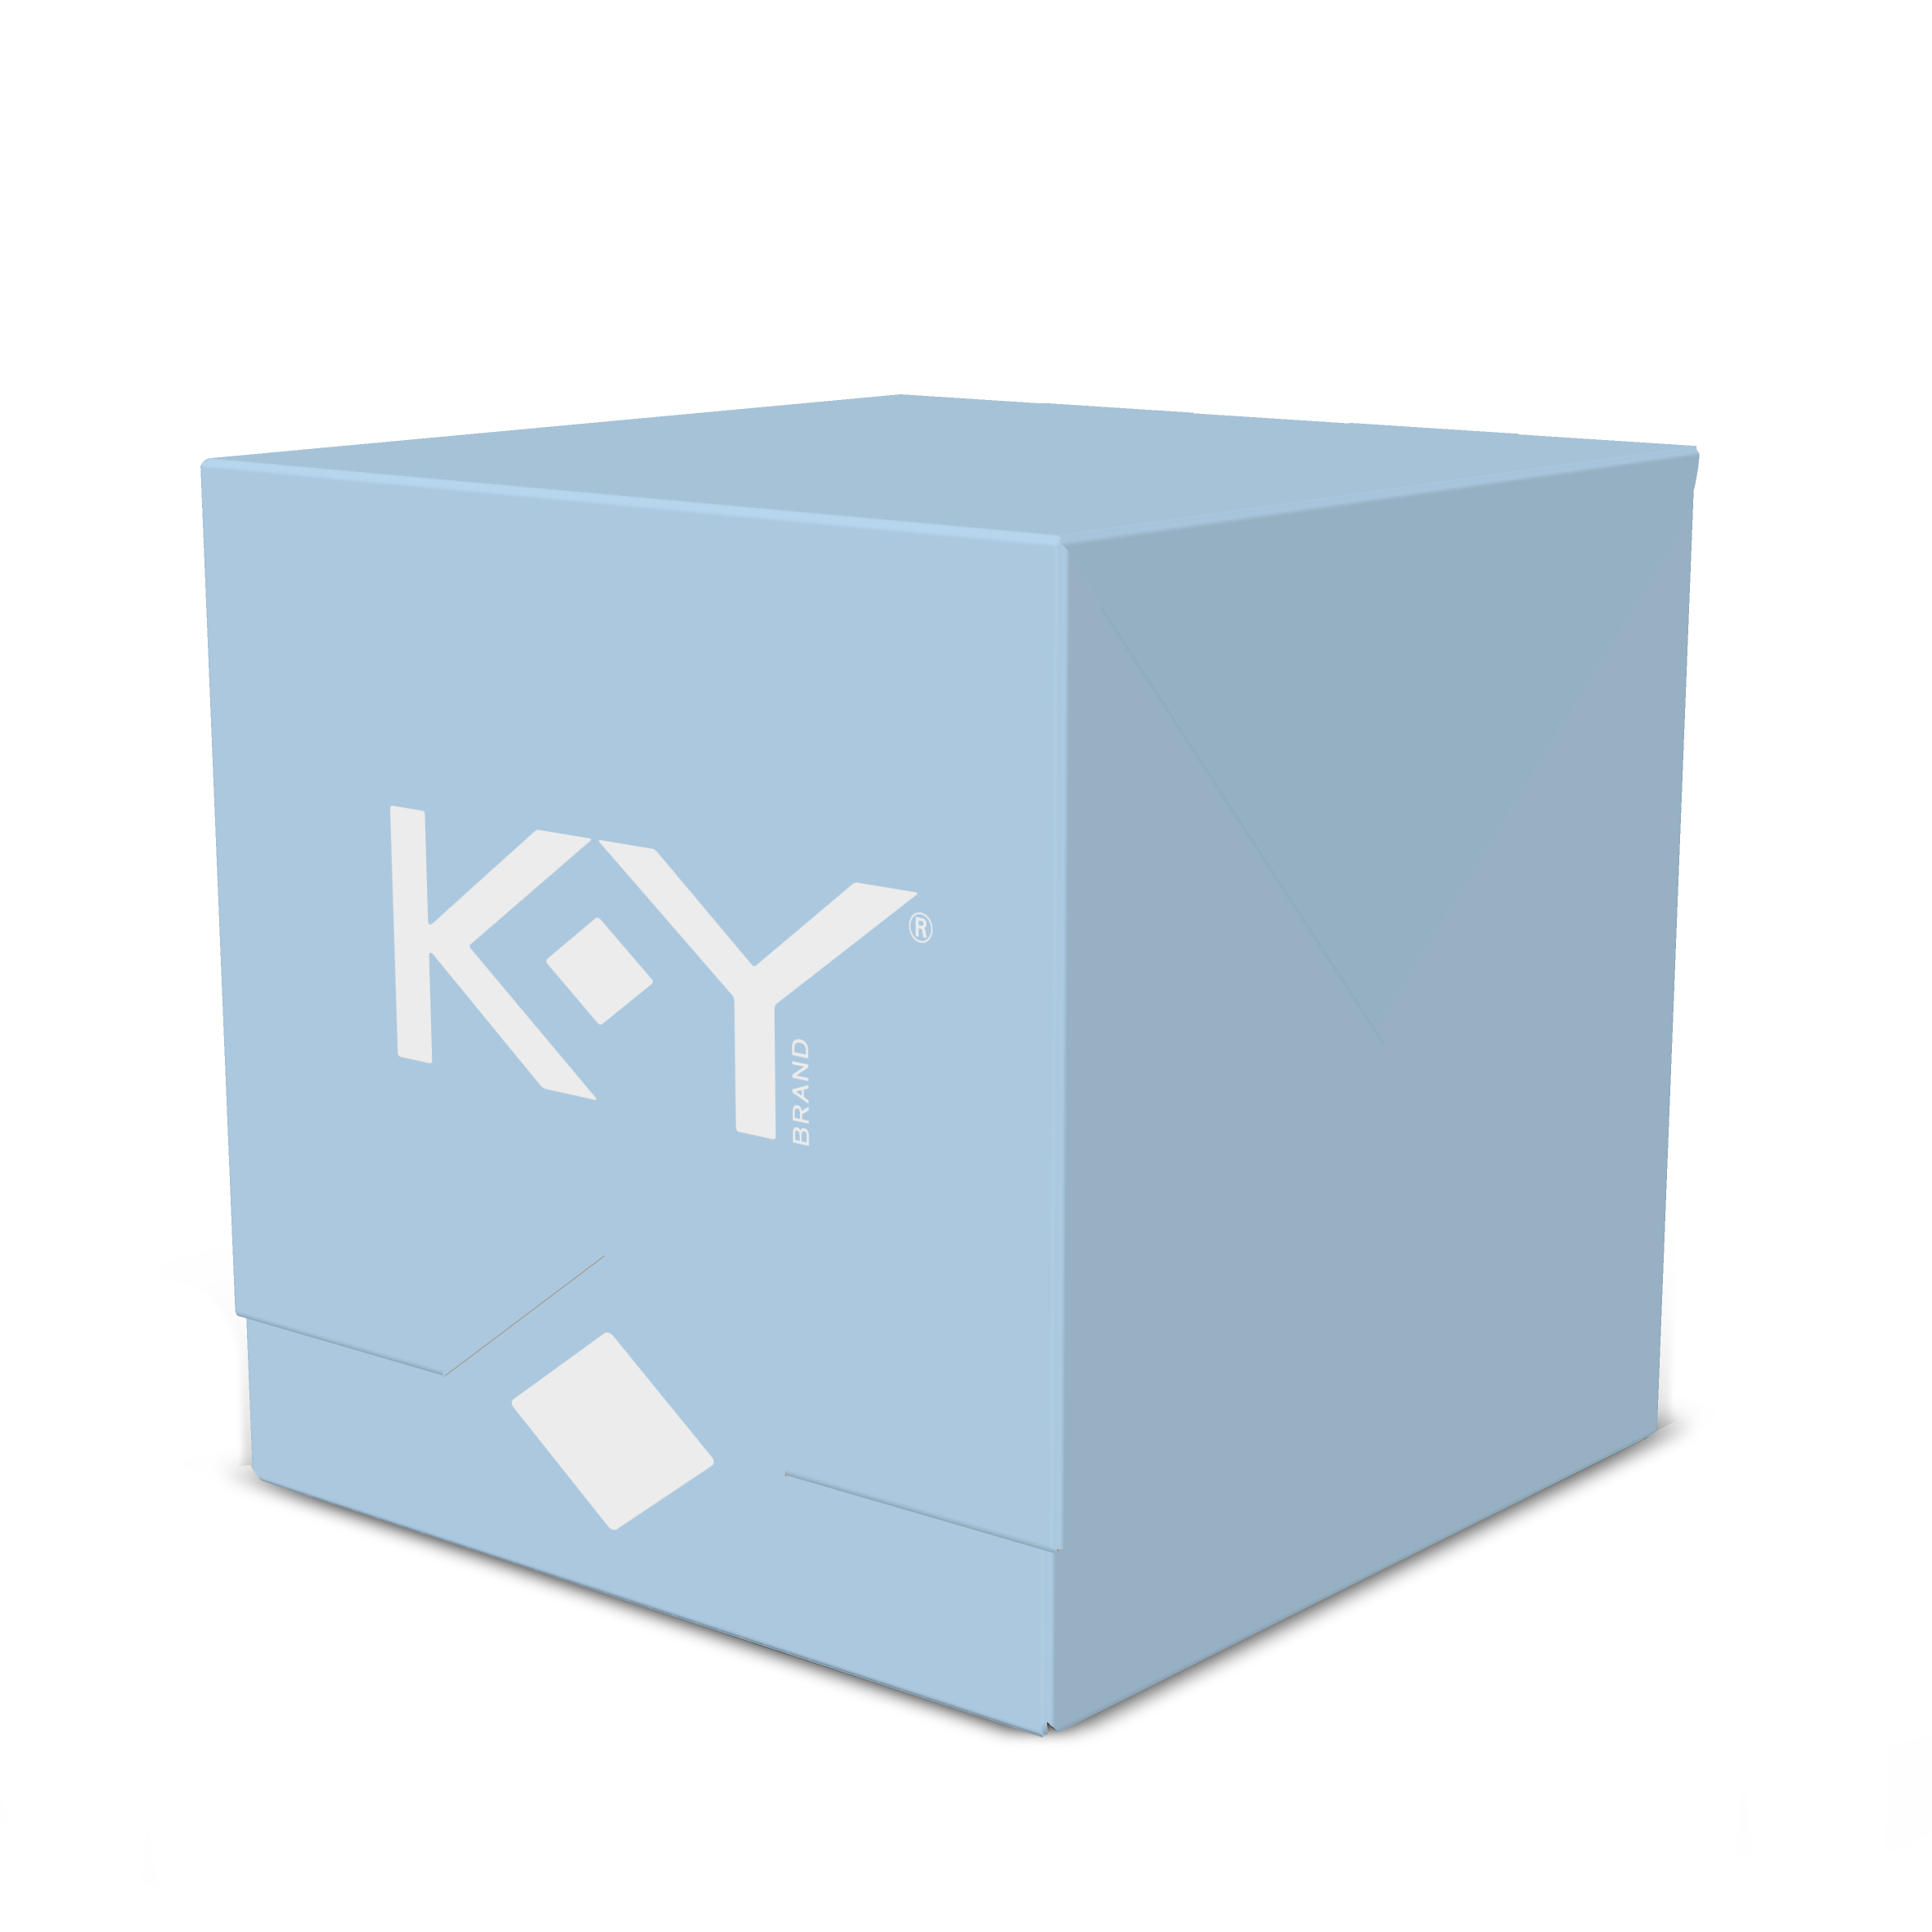 K-Y Extra Lubricated Condom 12ct $5.79 (Check goPuff to see if they deliver in your area)